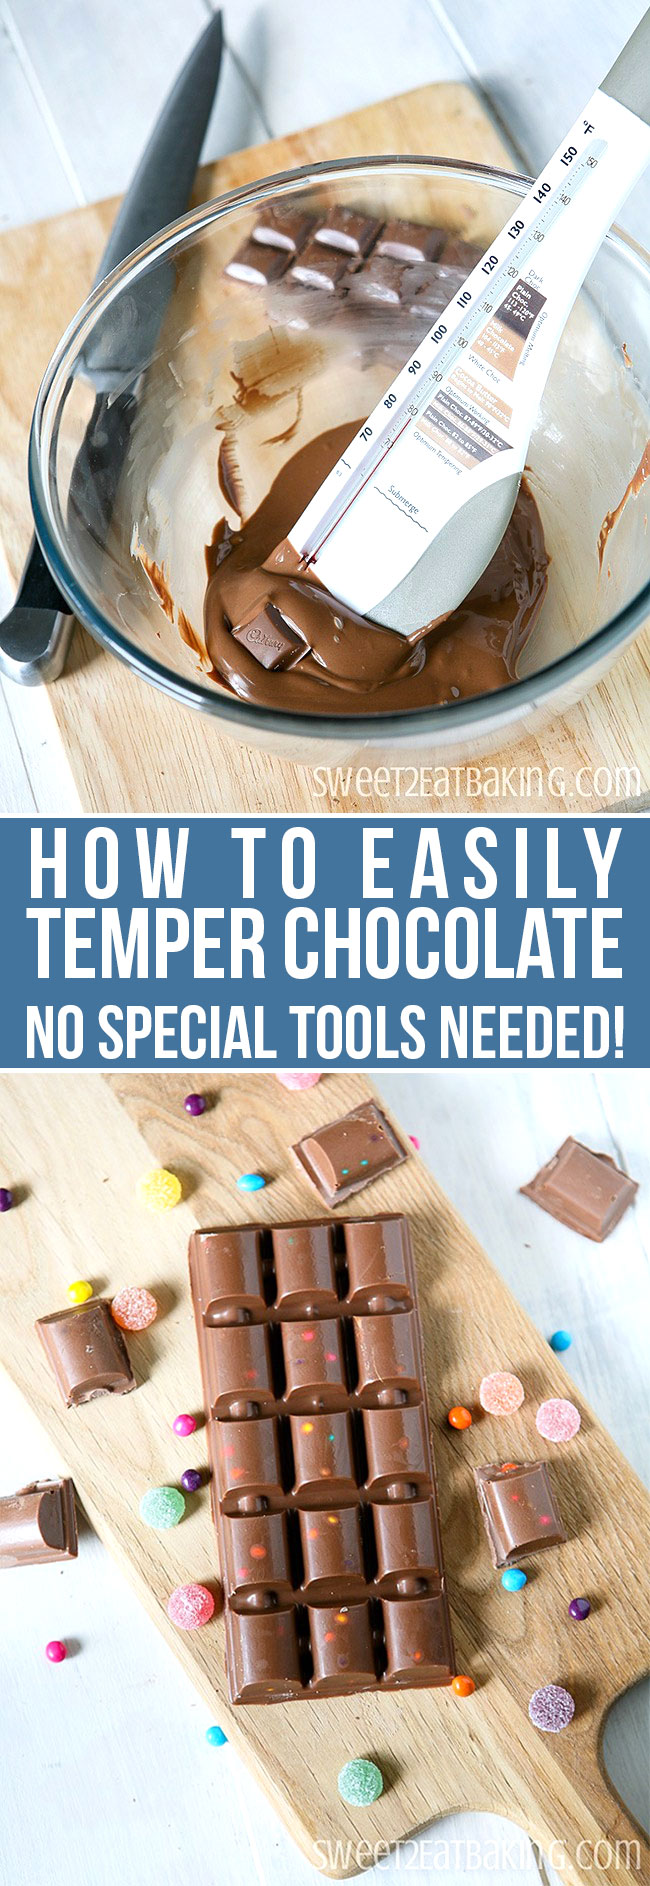 How to Temper Chocolate by Sweet2EatBaking.com | Learn how to temper chocolate quickly and easily with no special tools and equipment